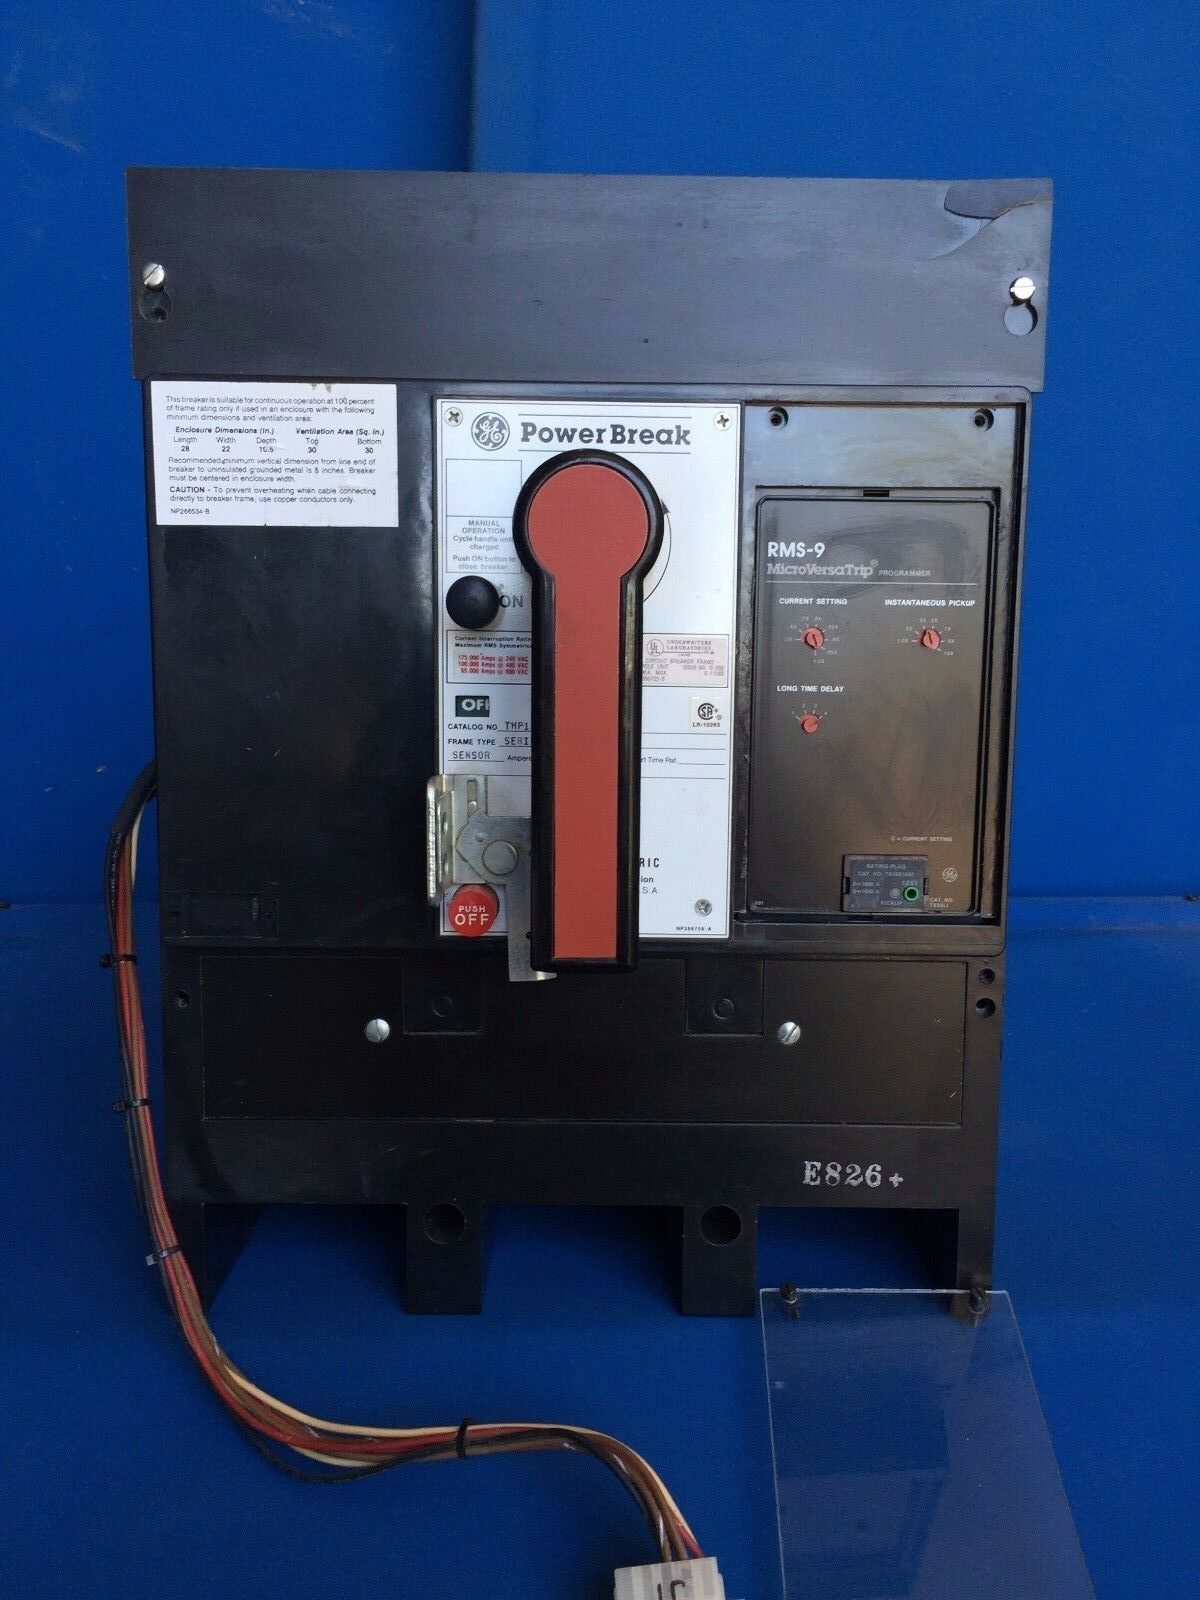 Ge Power Break Thp1616ss 1600a 600v 3p Circuit Breaker W Shunt Trip Thermal Breakers And Turn Off The If Current Auxiliary 1 Of 8only Available